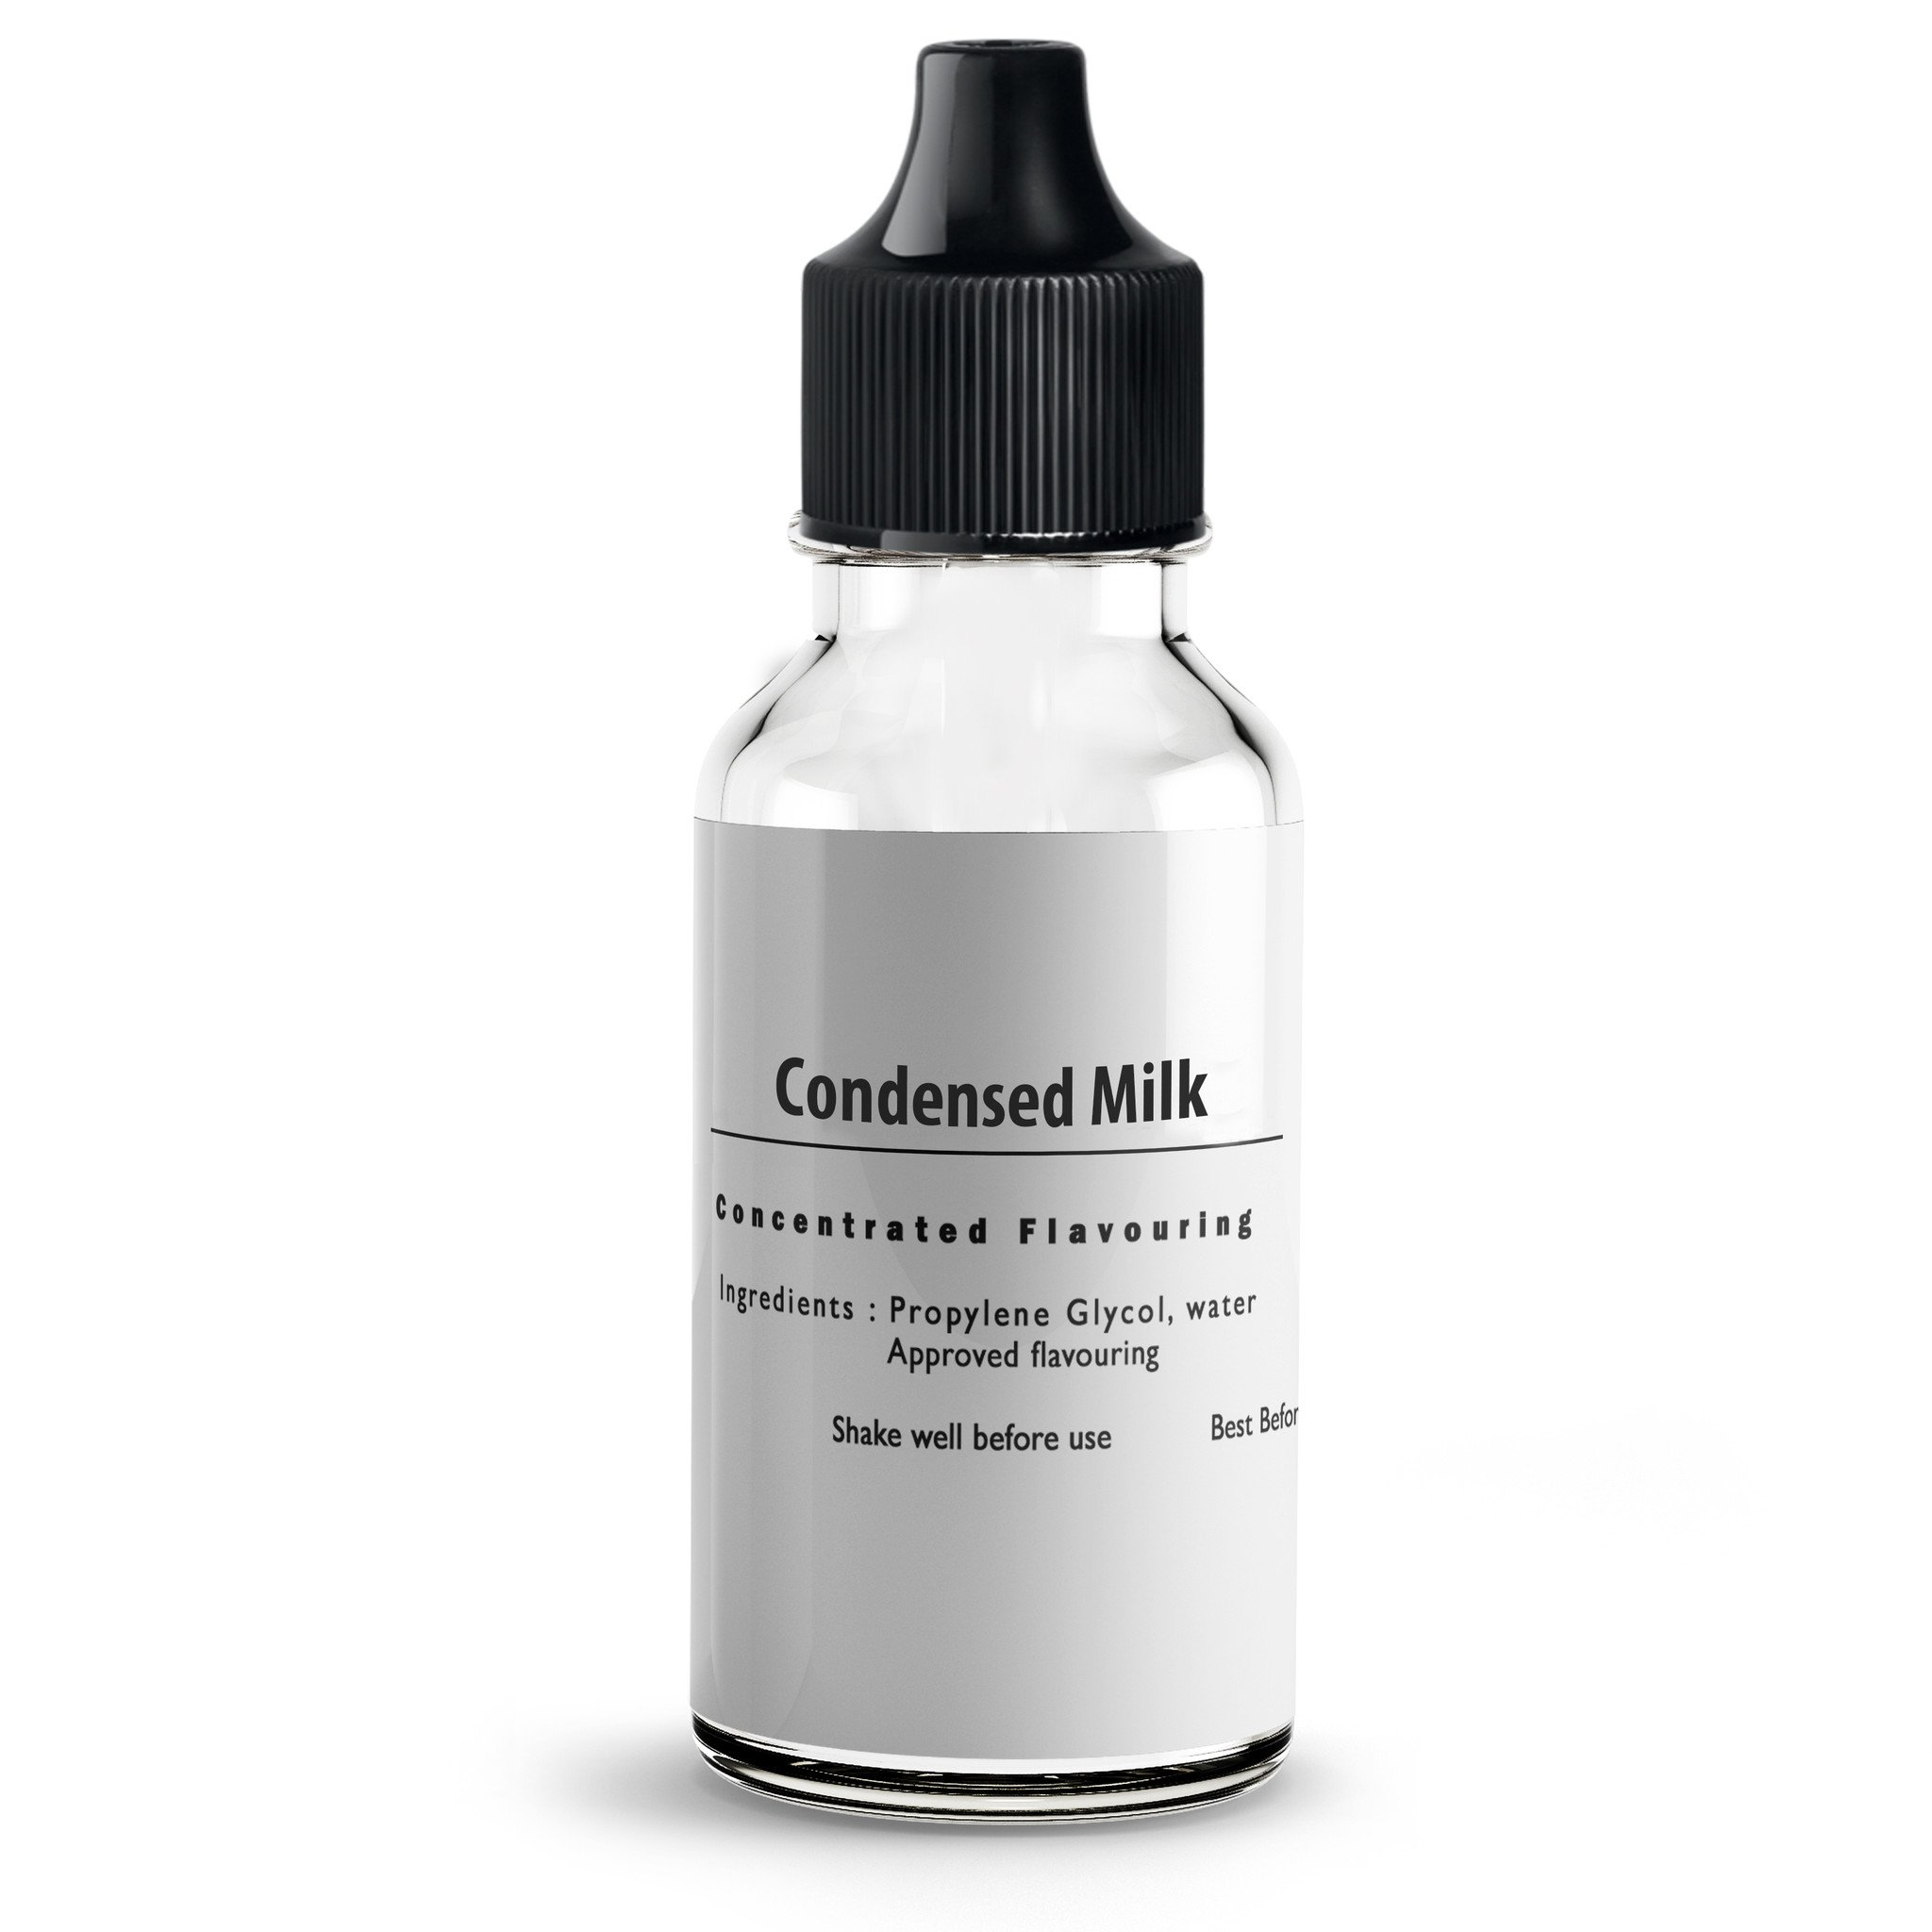 Condensed Milk Flavour Concentrate For E Liquids